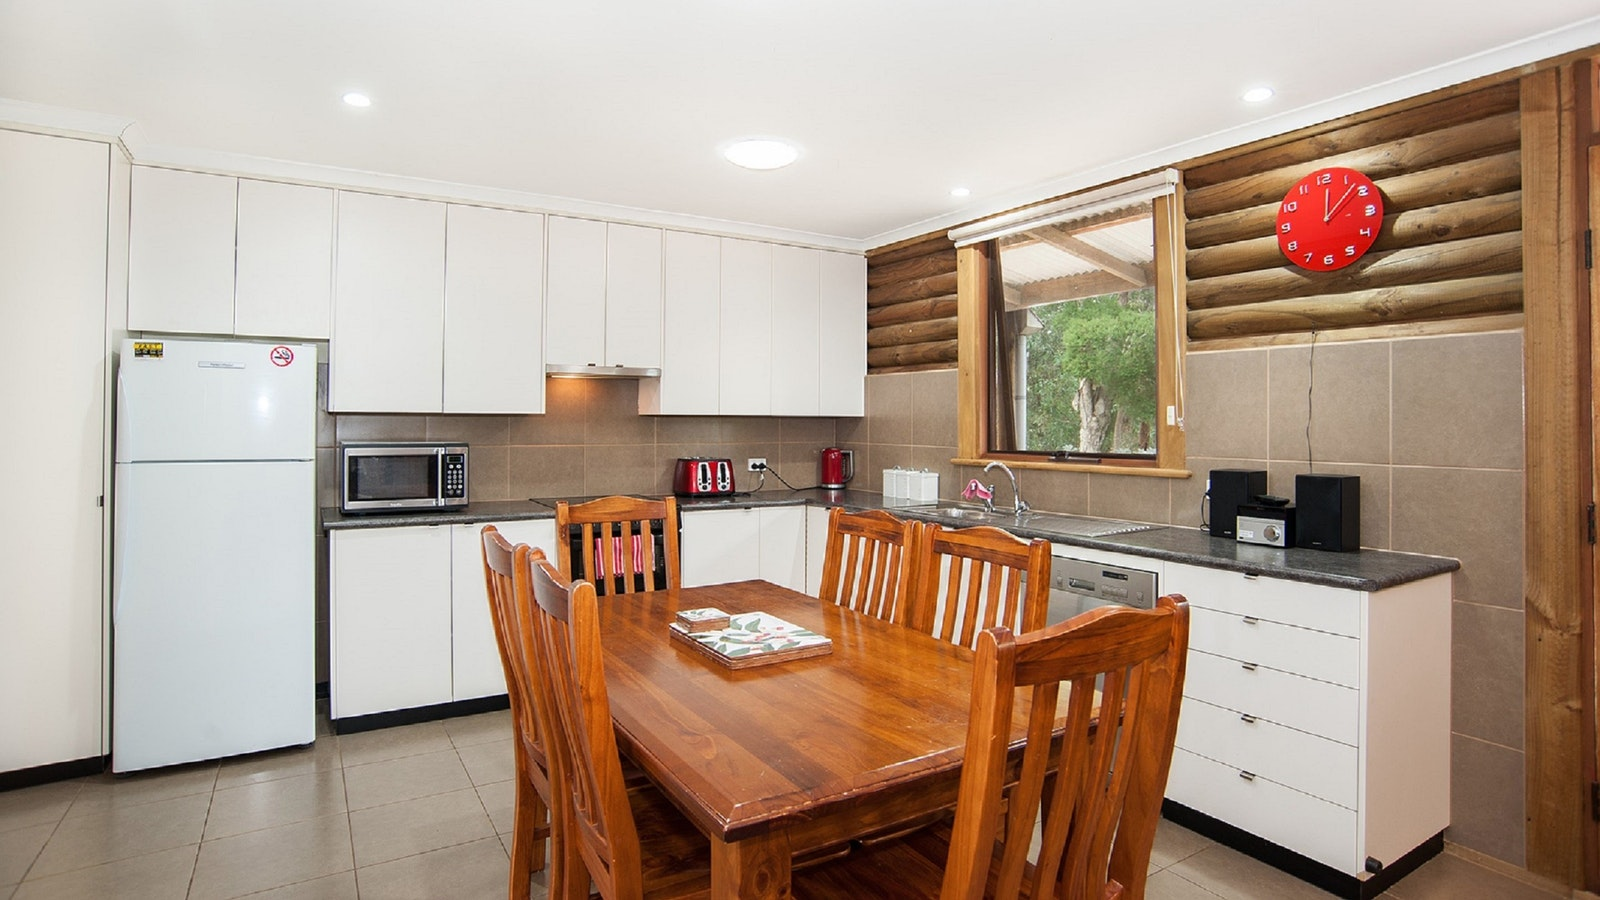 Full modern kitchen facilities